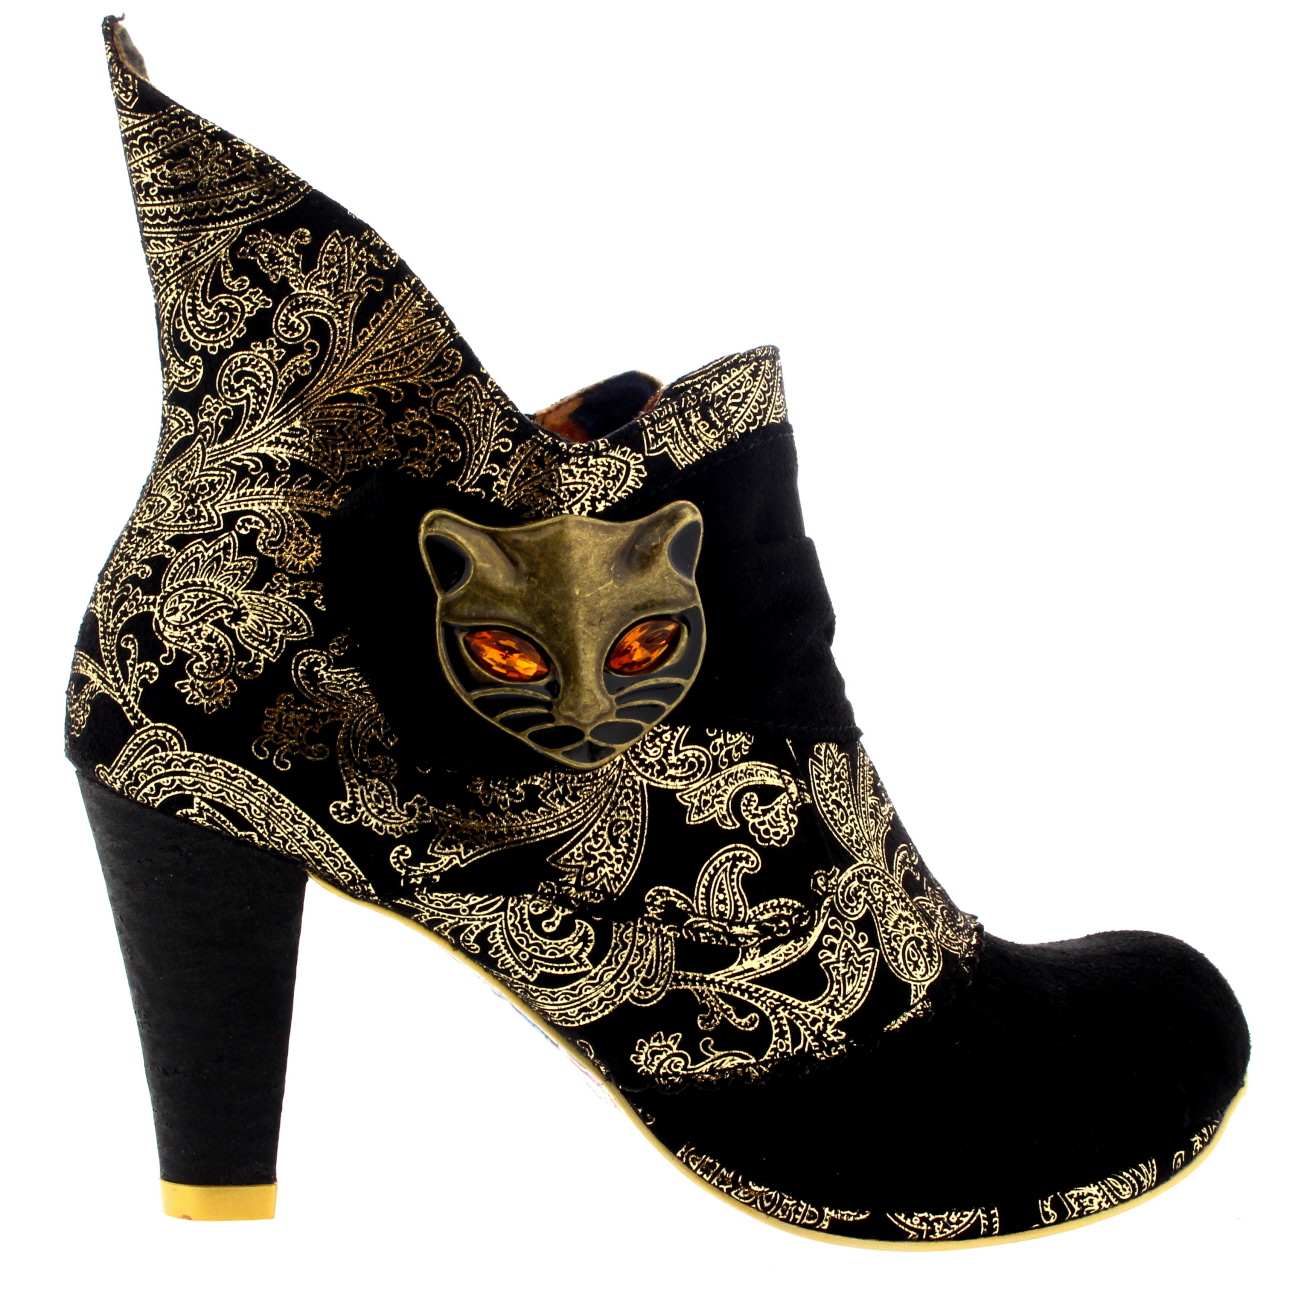 Real Authentic For Sale Womens Miaow Boots Irregular Choice Discount Factory Outlet 3Kw0YuIL